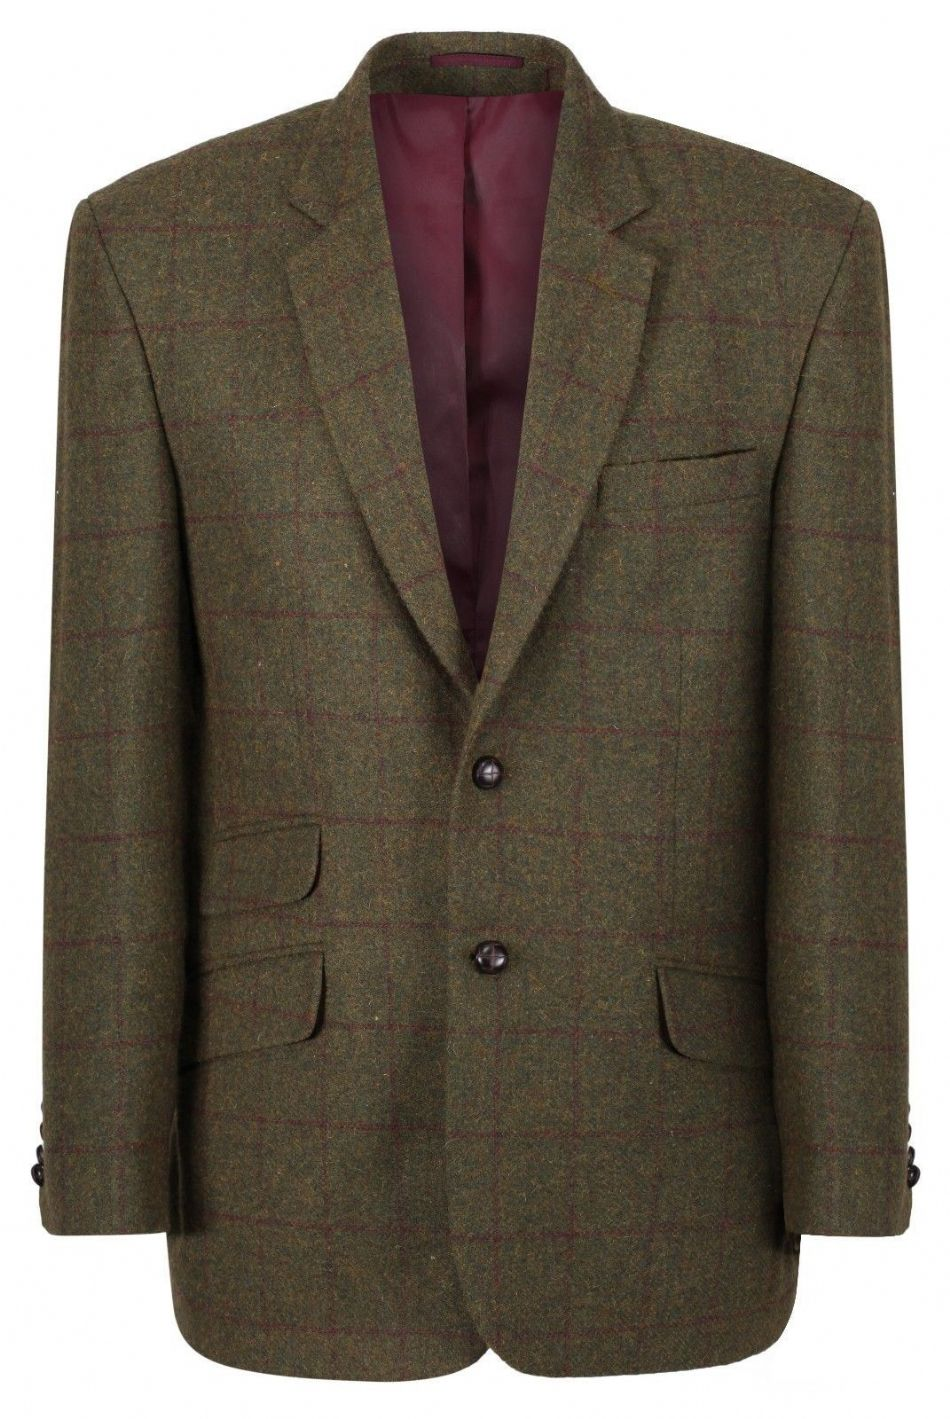 Blenheim Checked Tweed Jacket Blazer Sports Coat Quality Green Claret Wool New